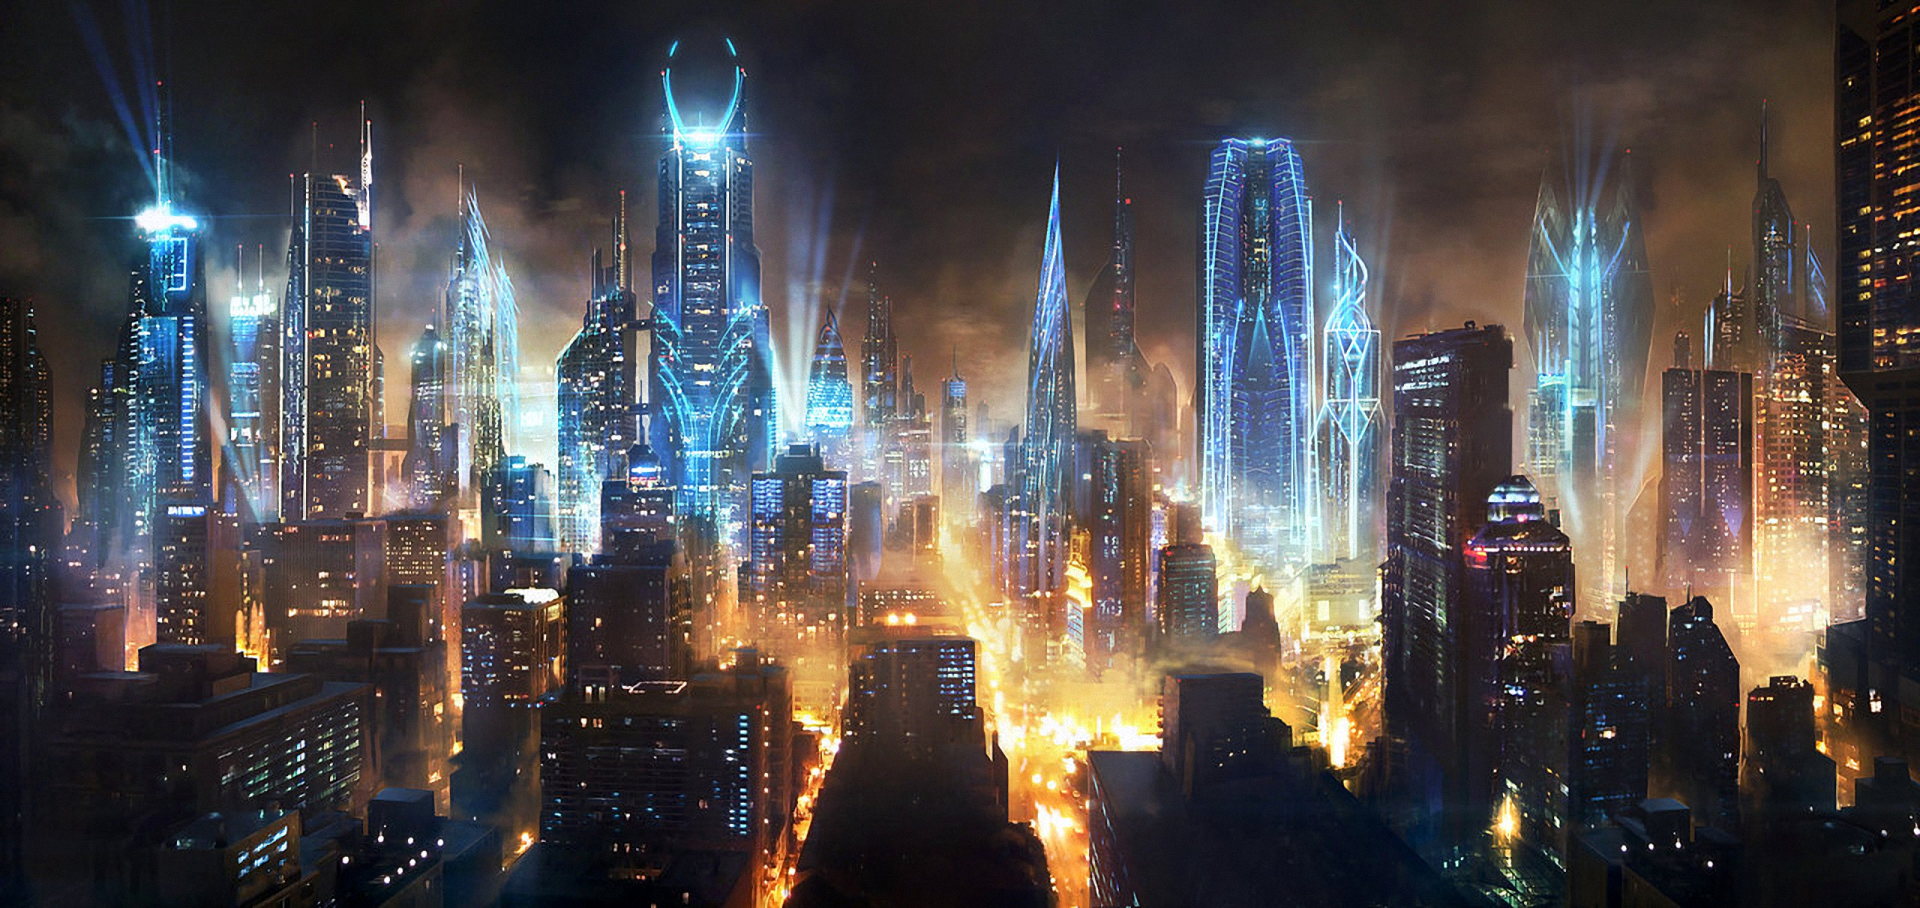 Futuristic City Artwork Fantasy Art Concept Wallpapers HD